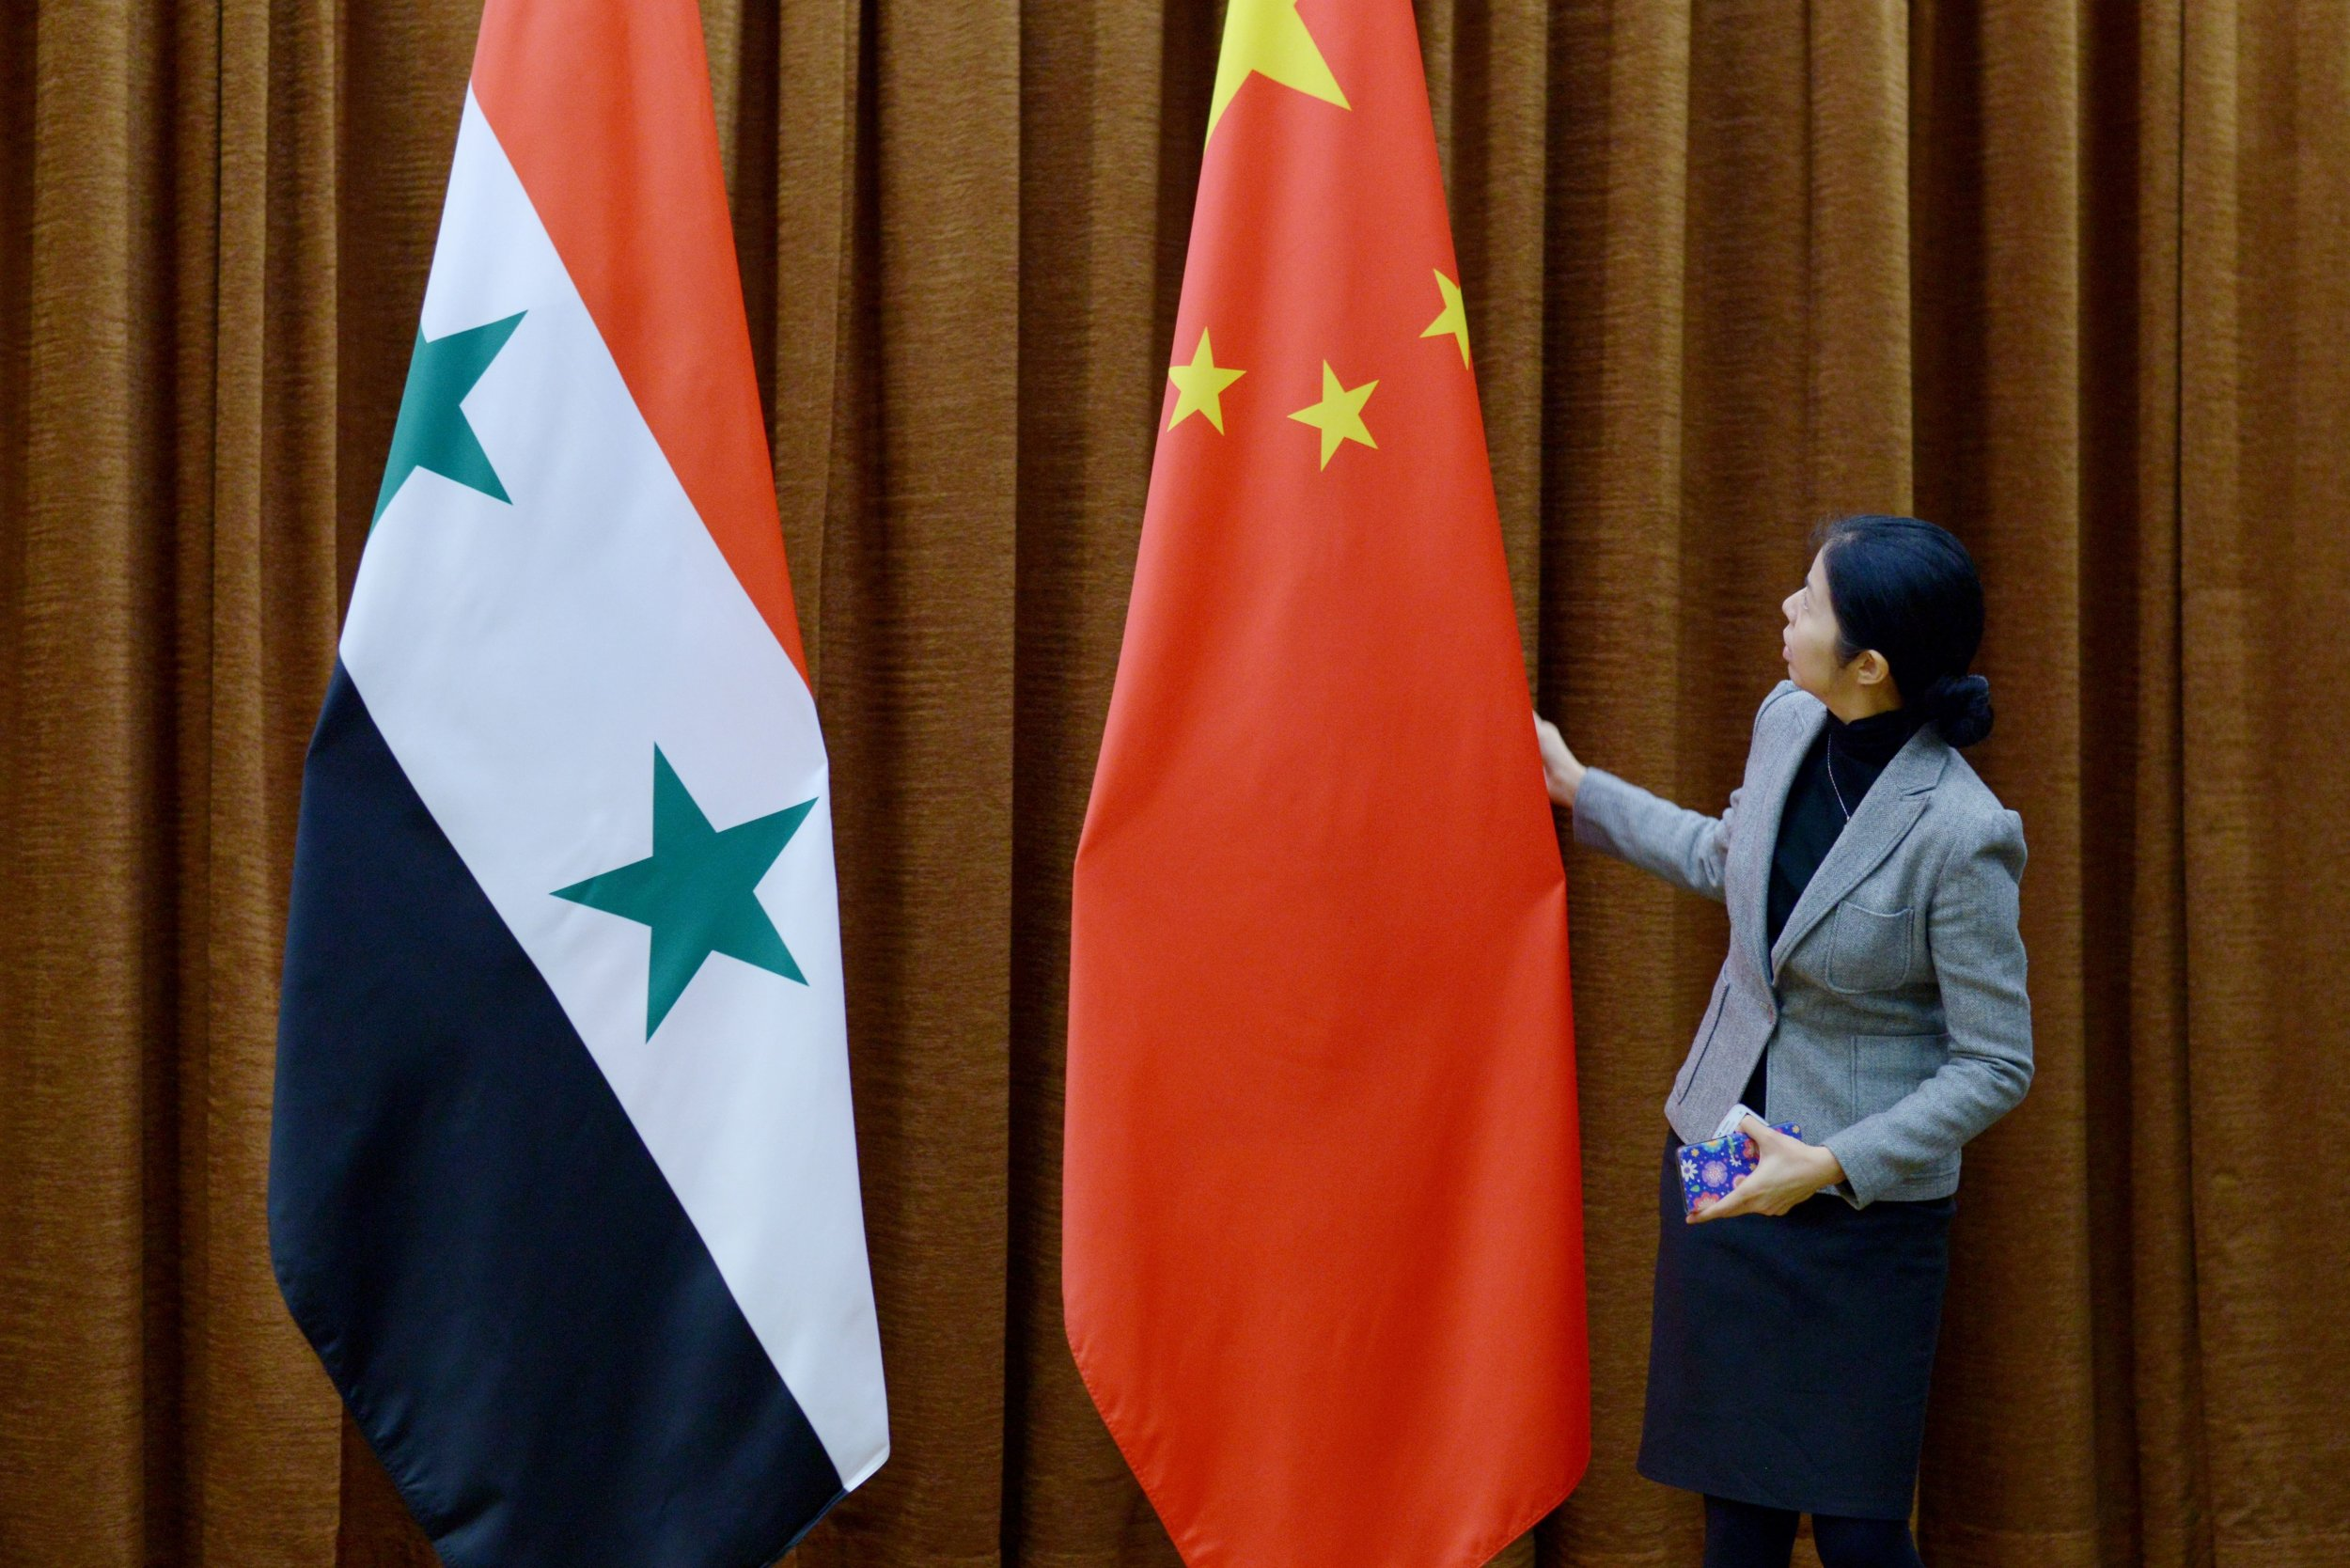 china and syria relationship